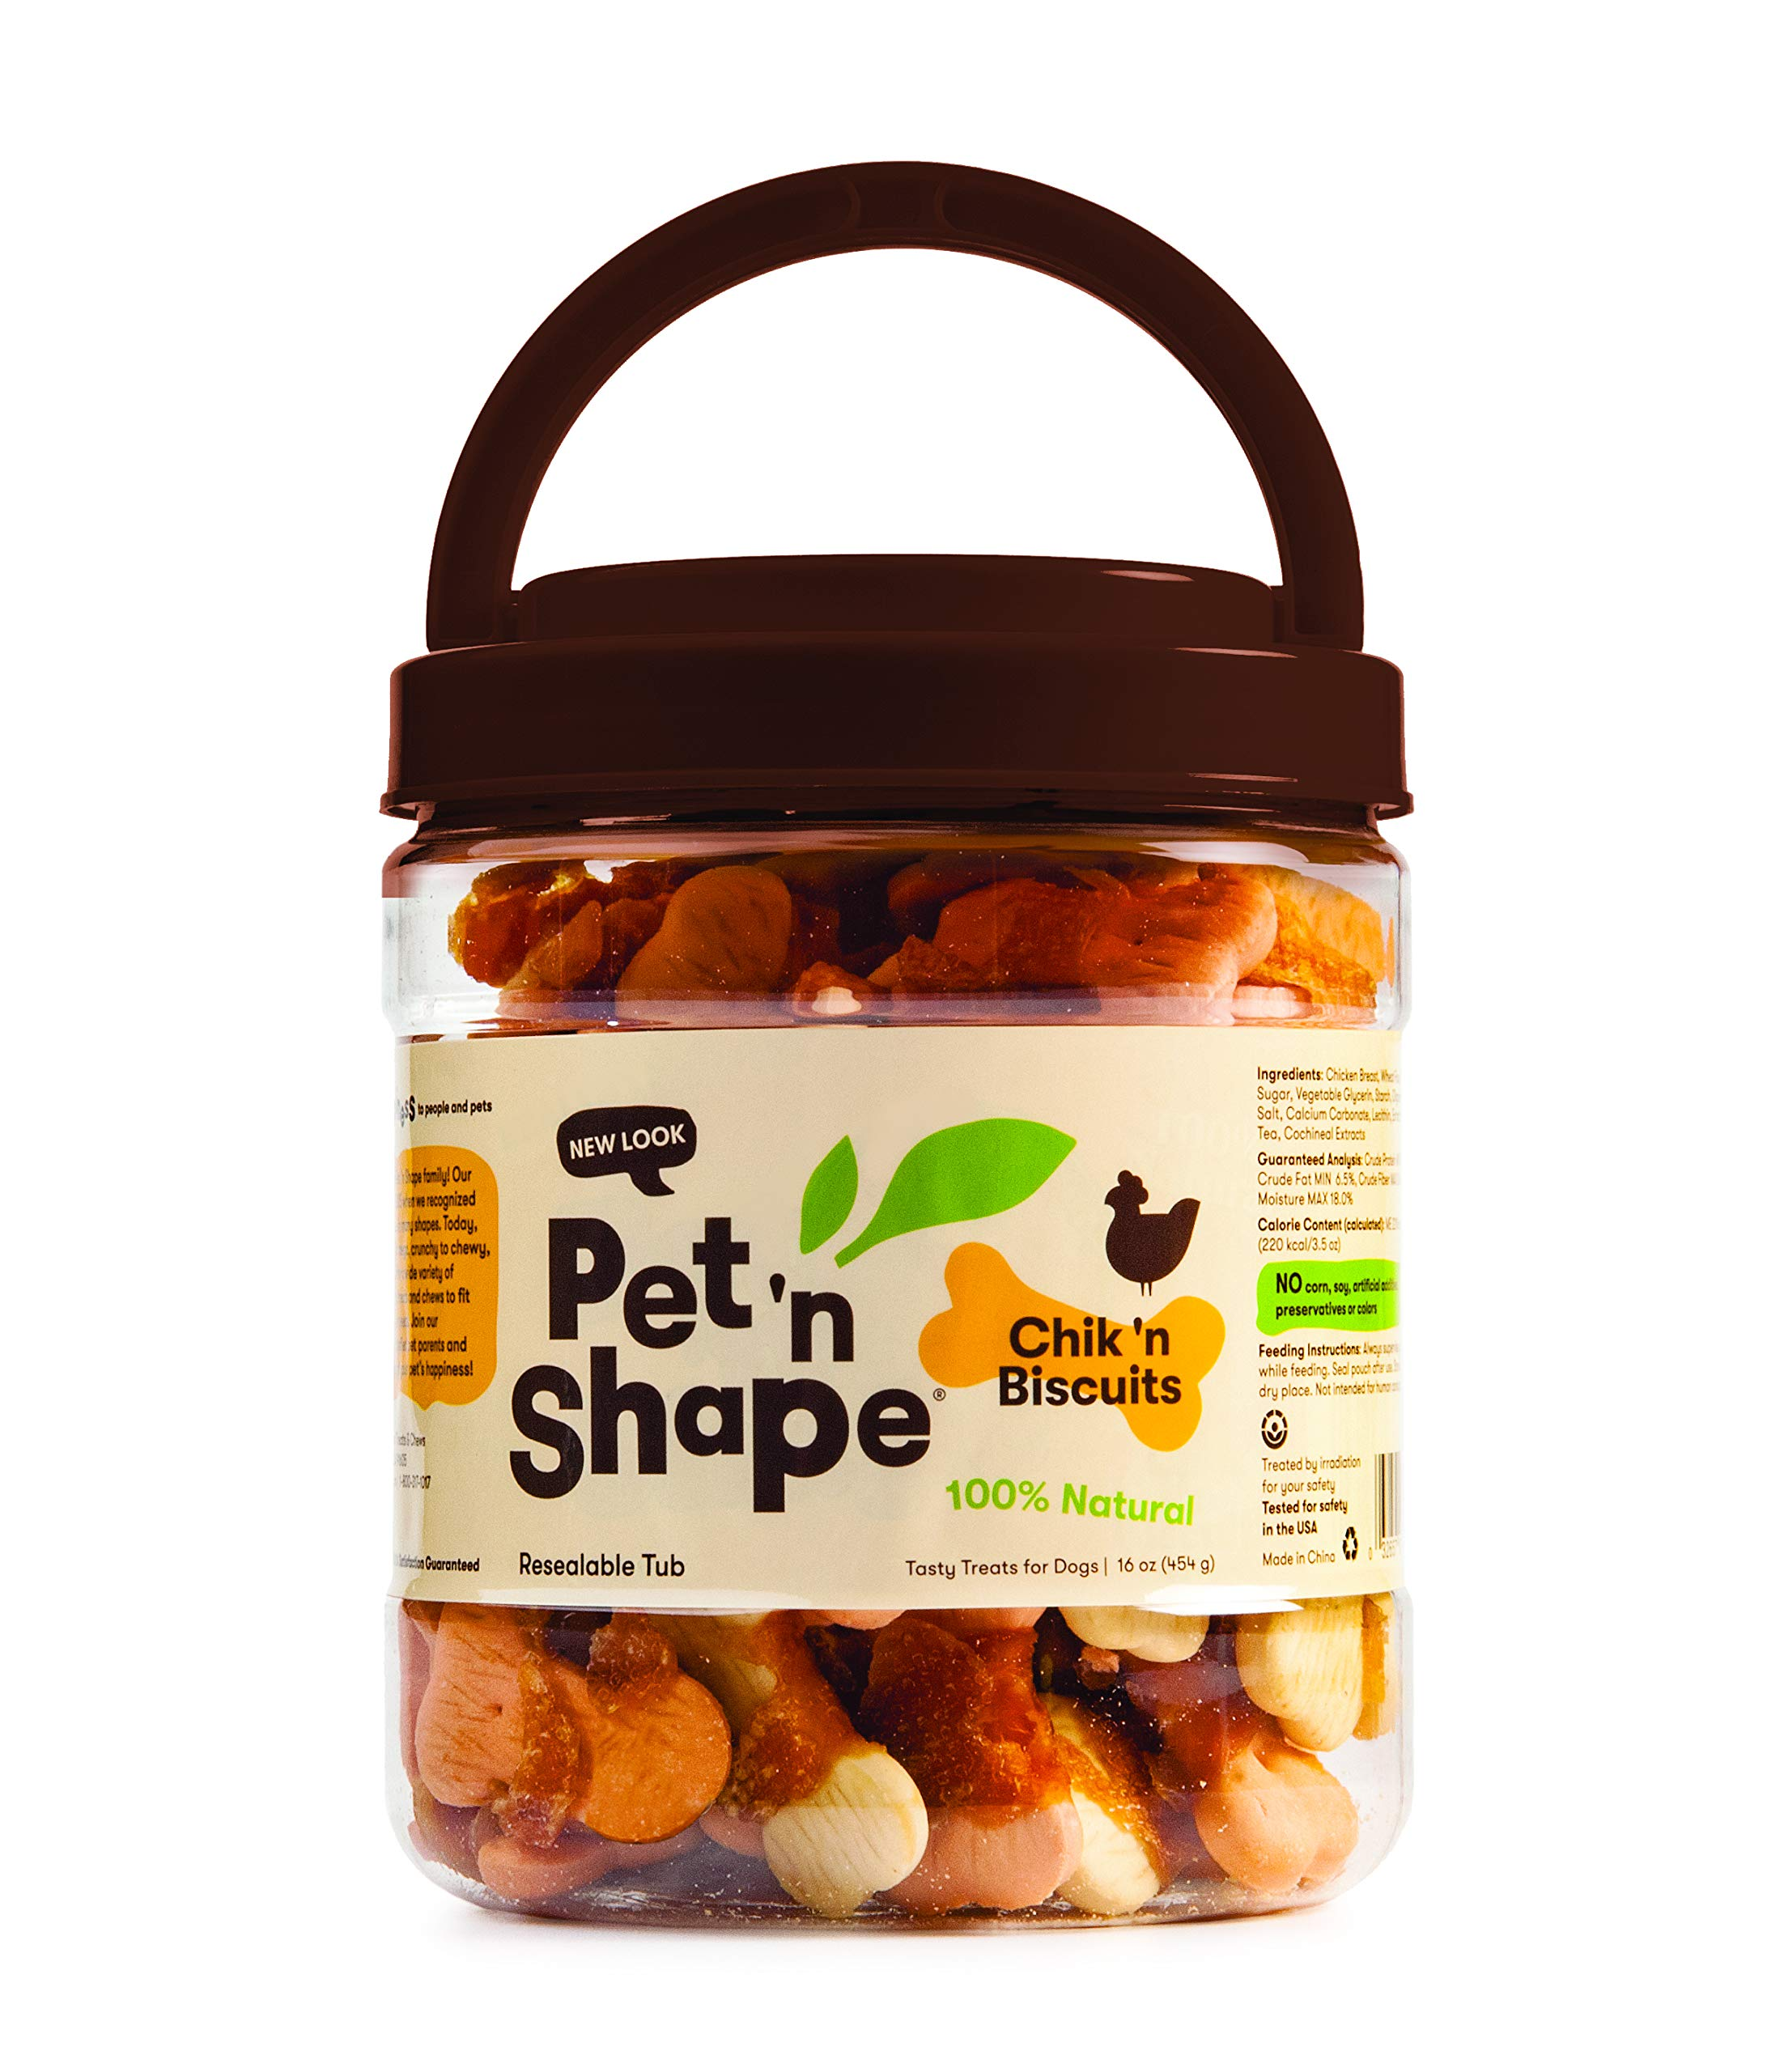 Pet 'n Shape Chik 'n Biscuits Natural Dog Treats, 1-Pound Tub